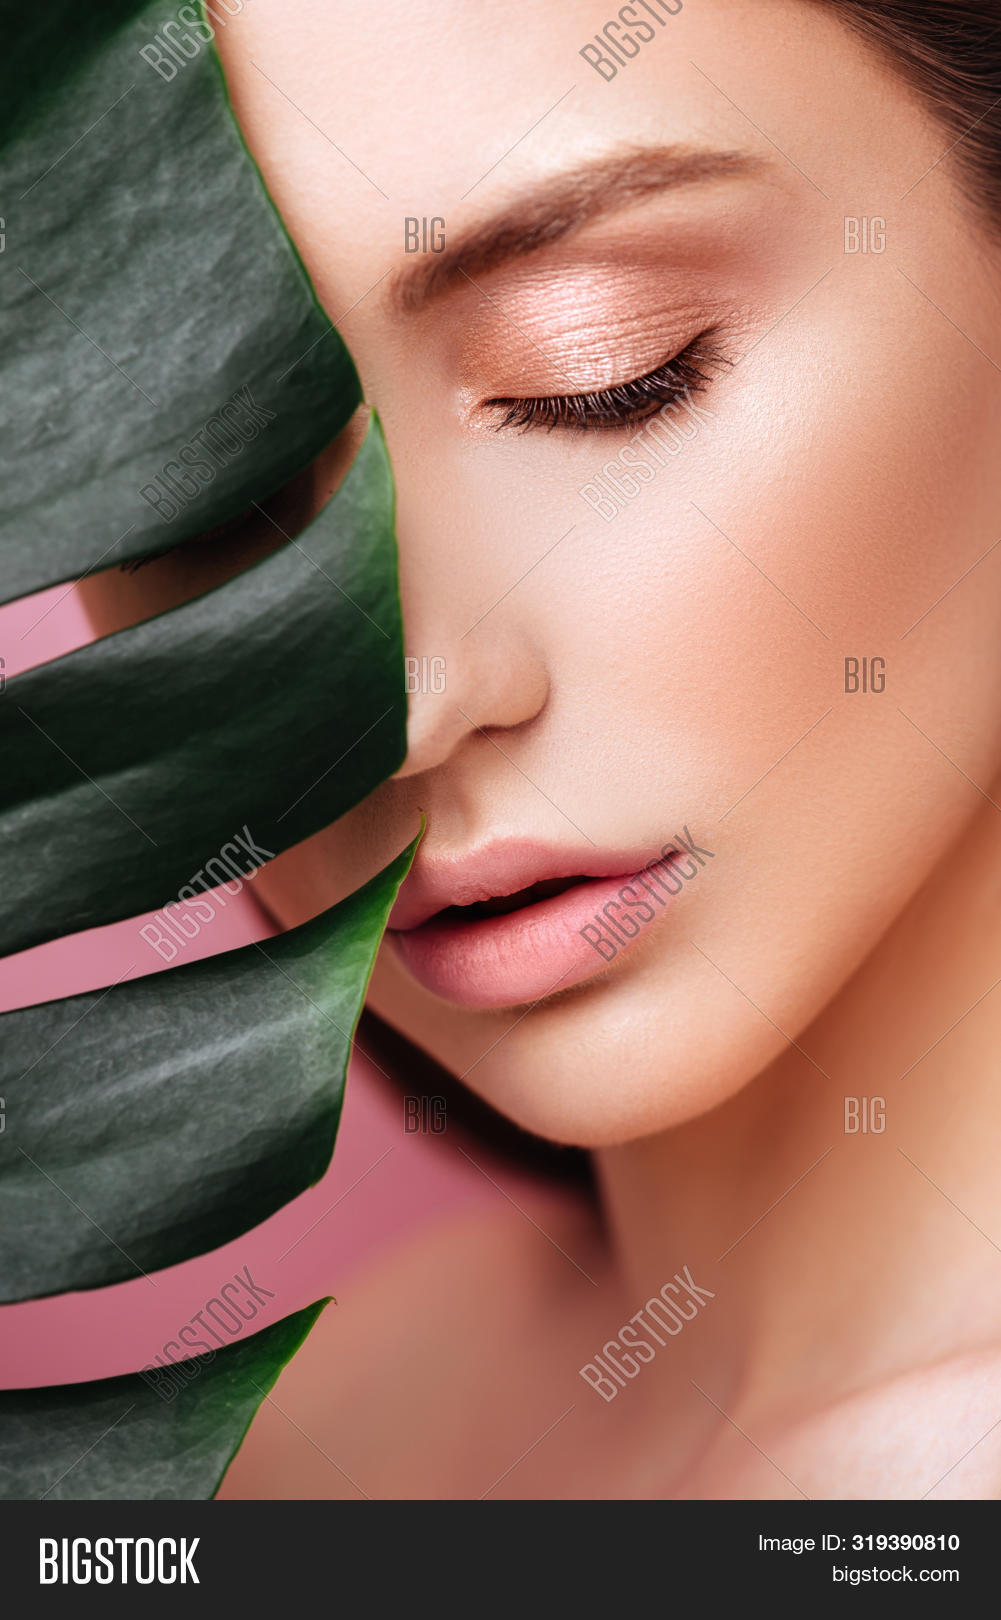 adult,art,attractive,background,beach,beautiful,beauty,brunette,care,close,color,eye,eyeshadow,face,facial,fashion,female,fresh,girl,glamour,green,hair,hand,health,healthy,leaf,lips,make-up,makeup,model,natural,nature,palm,perfect,person,pink,portrait,pretty,sensuality,sexy,skin,spa,spring,summer,sun,tree,tropical,vacation,woman,young